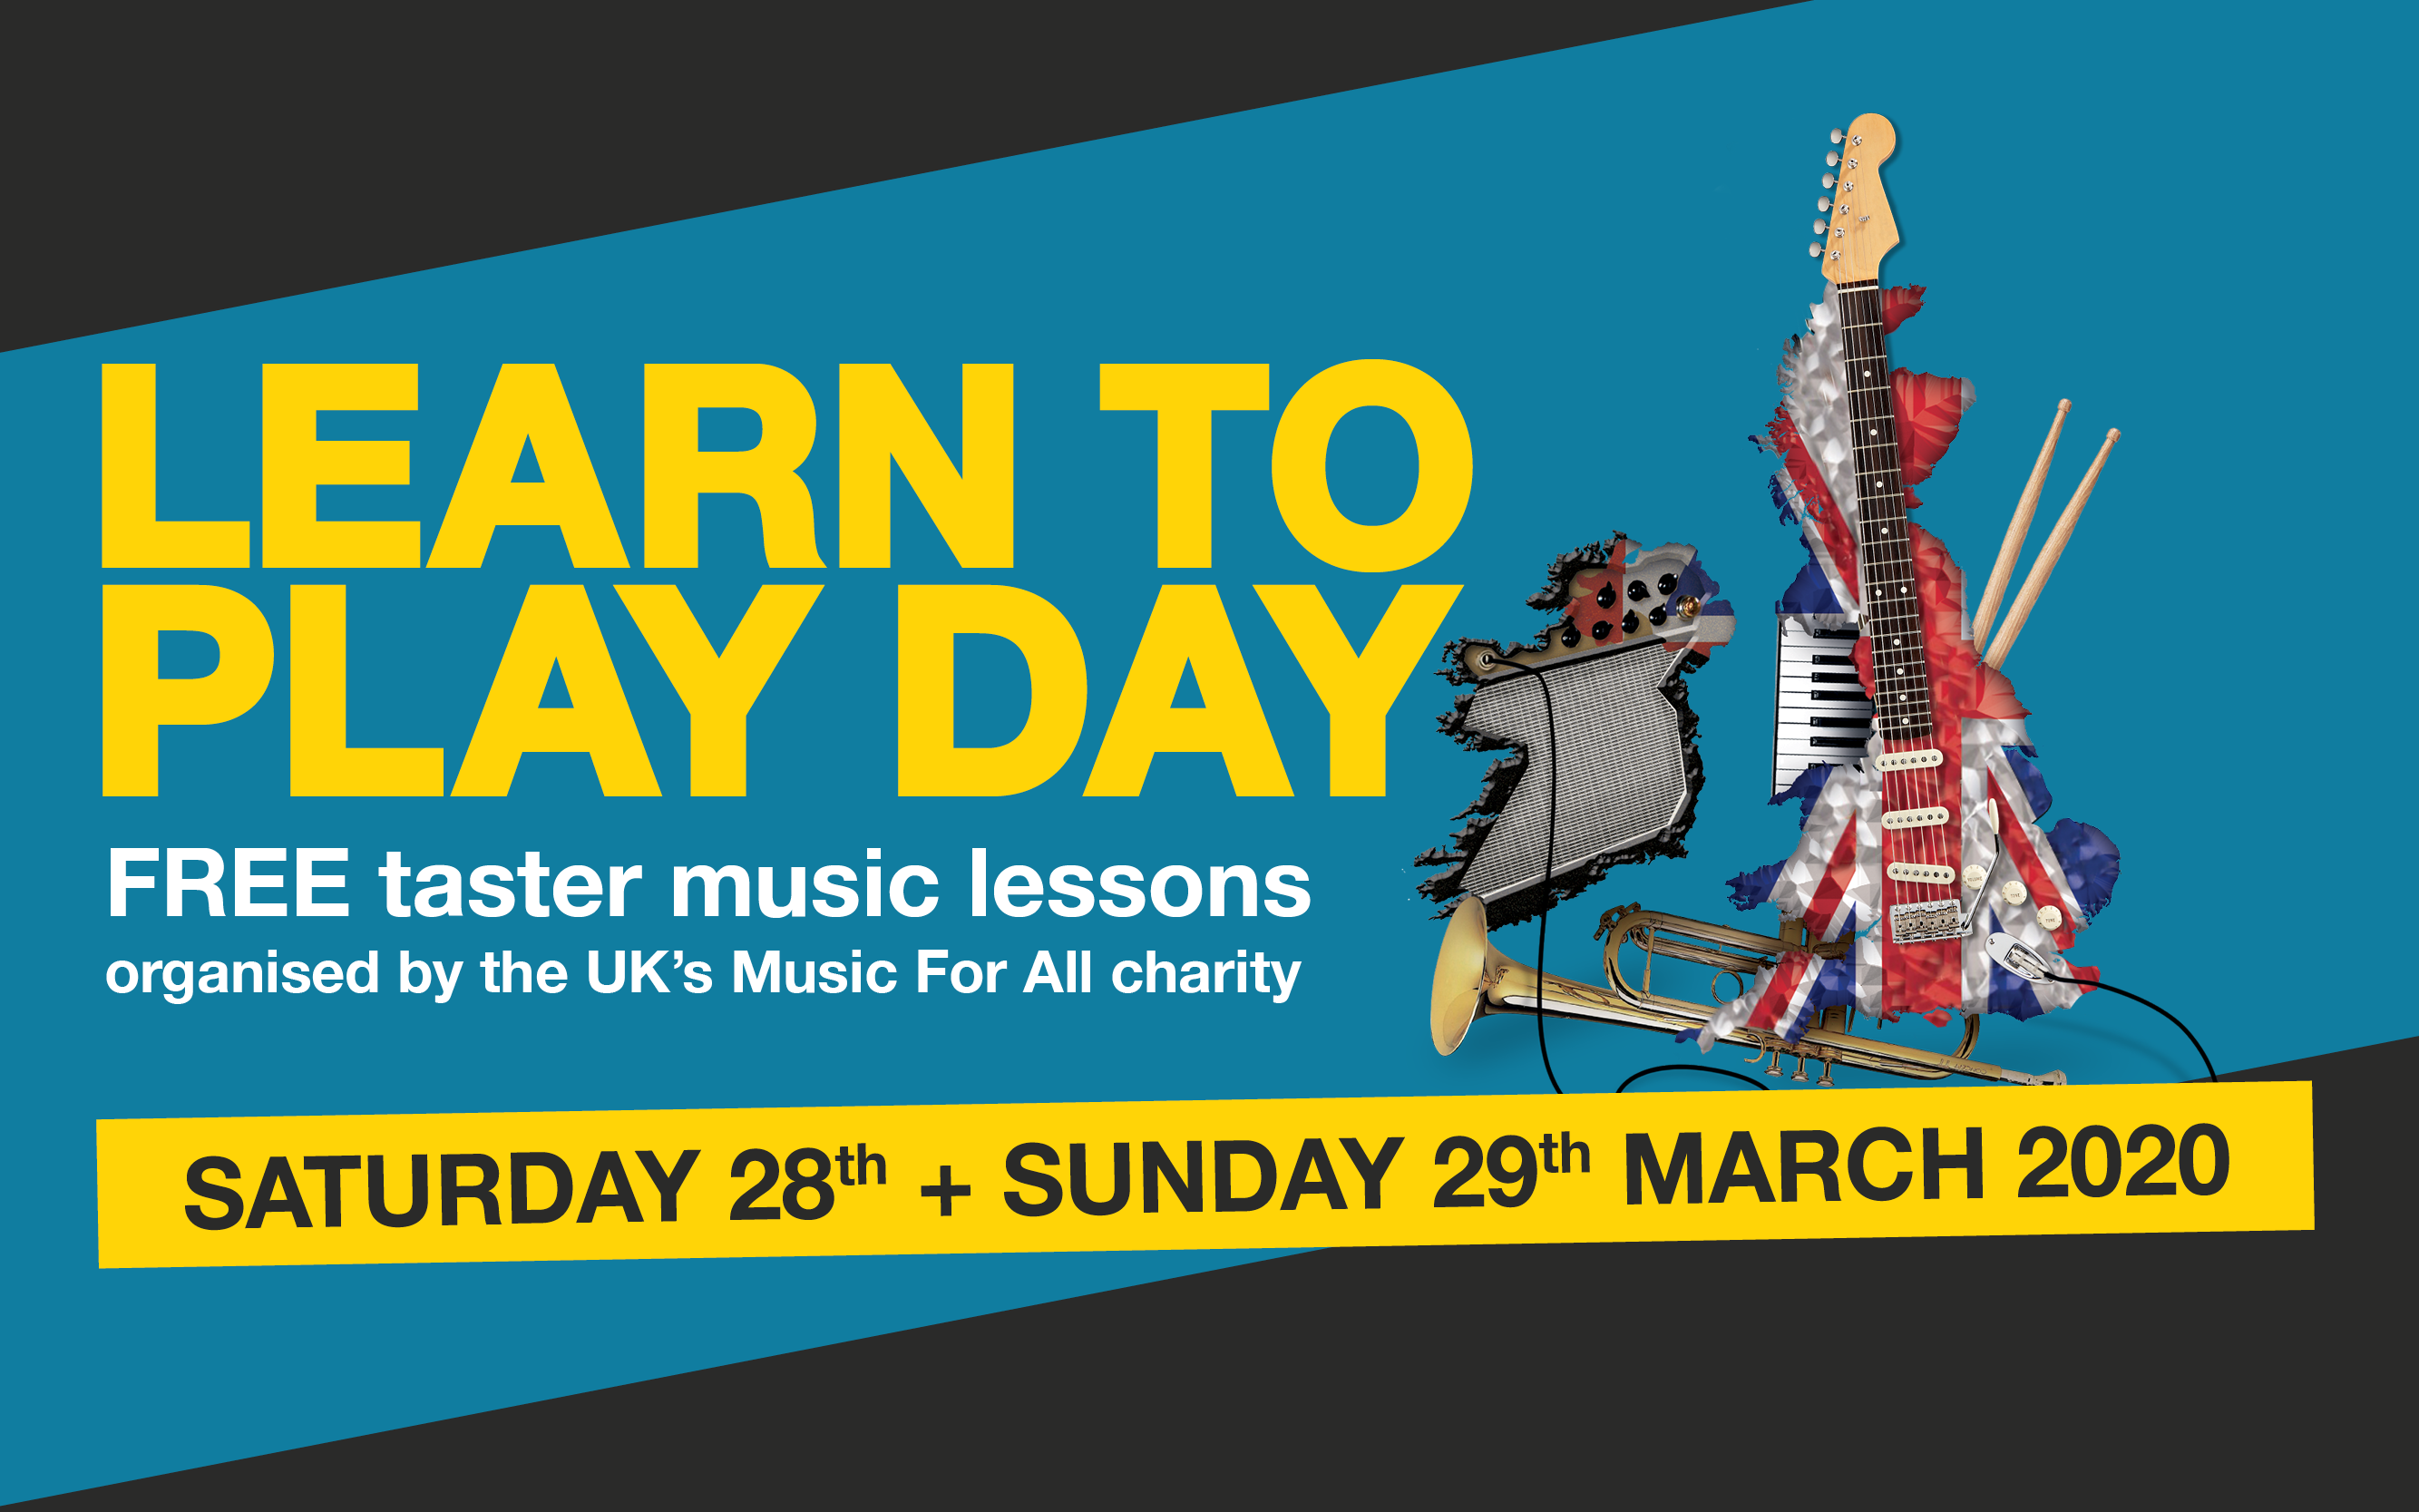 Learn to Play Day 2020